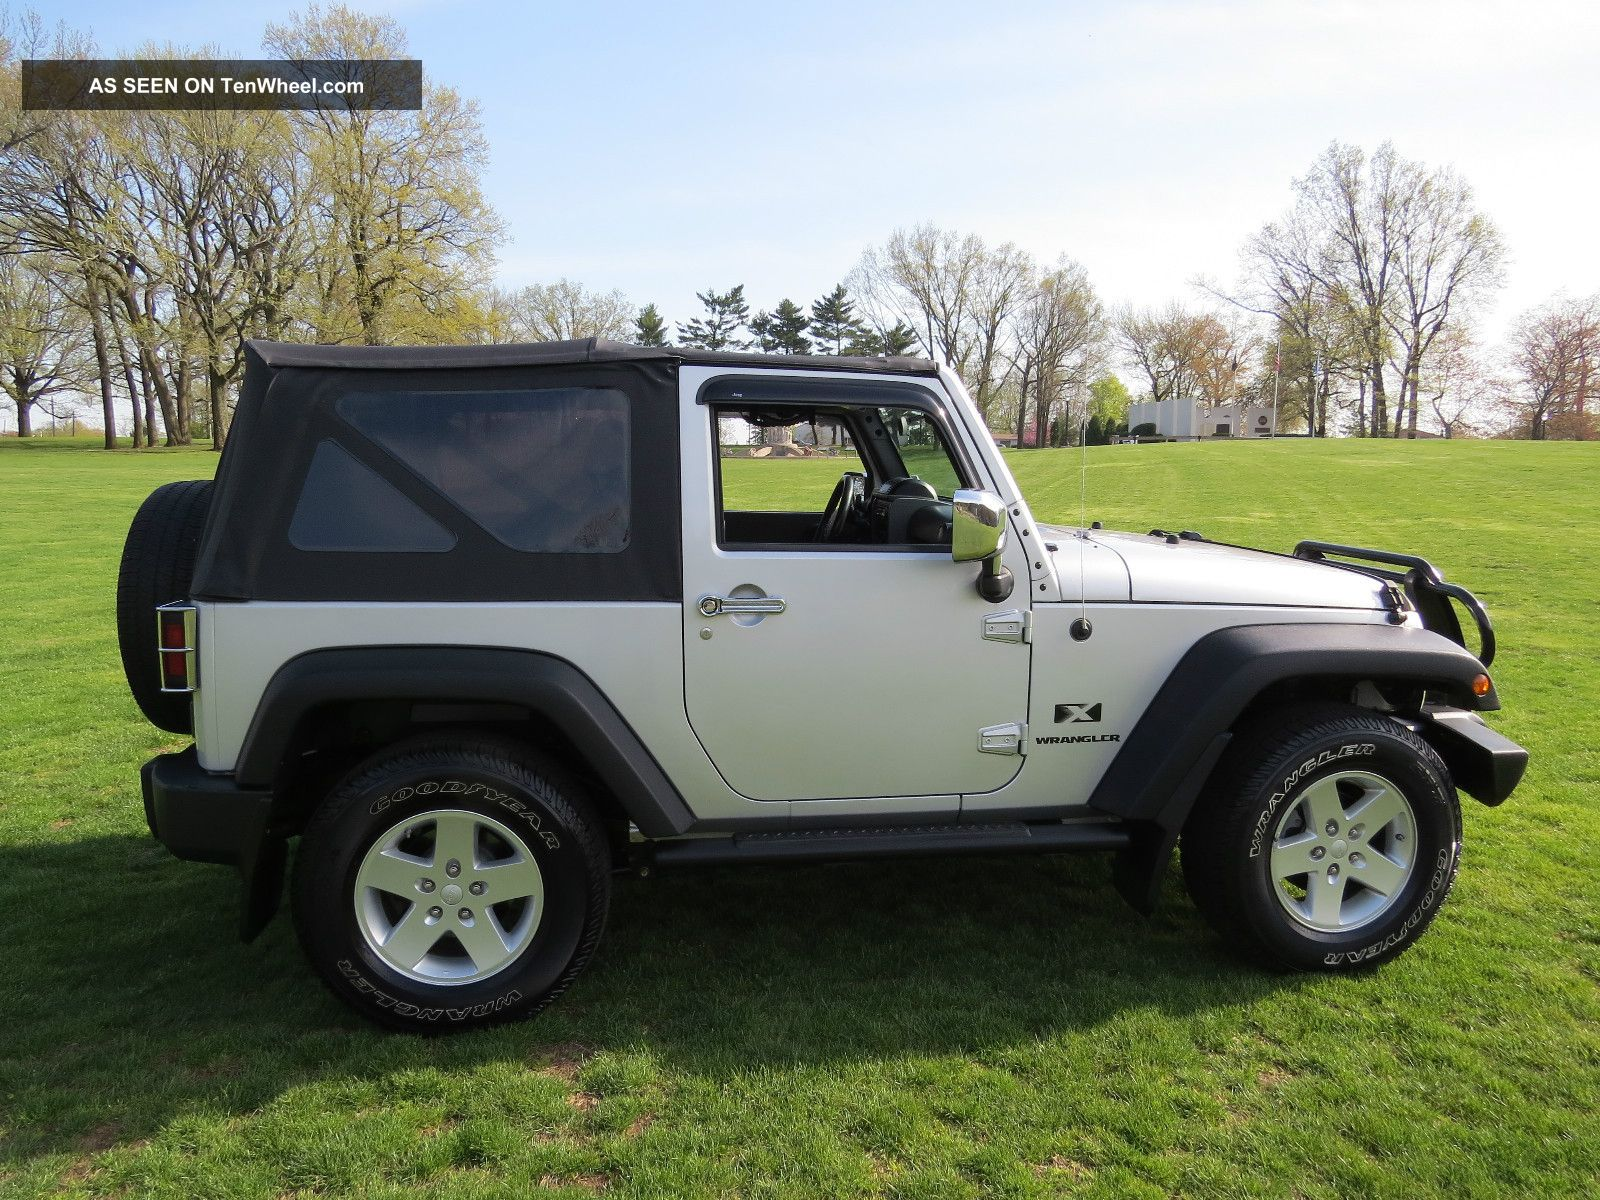 2008 jeep wrangler x sport utility 2 door 3 8l priced to sell. Black Bedroom Furniture Sets. Home Design Ideas